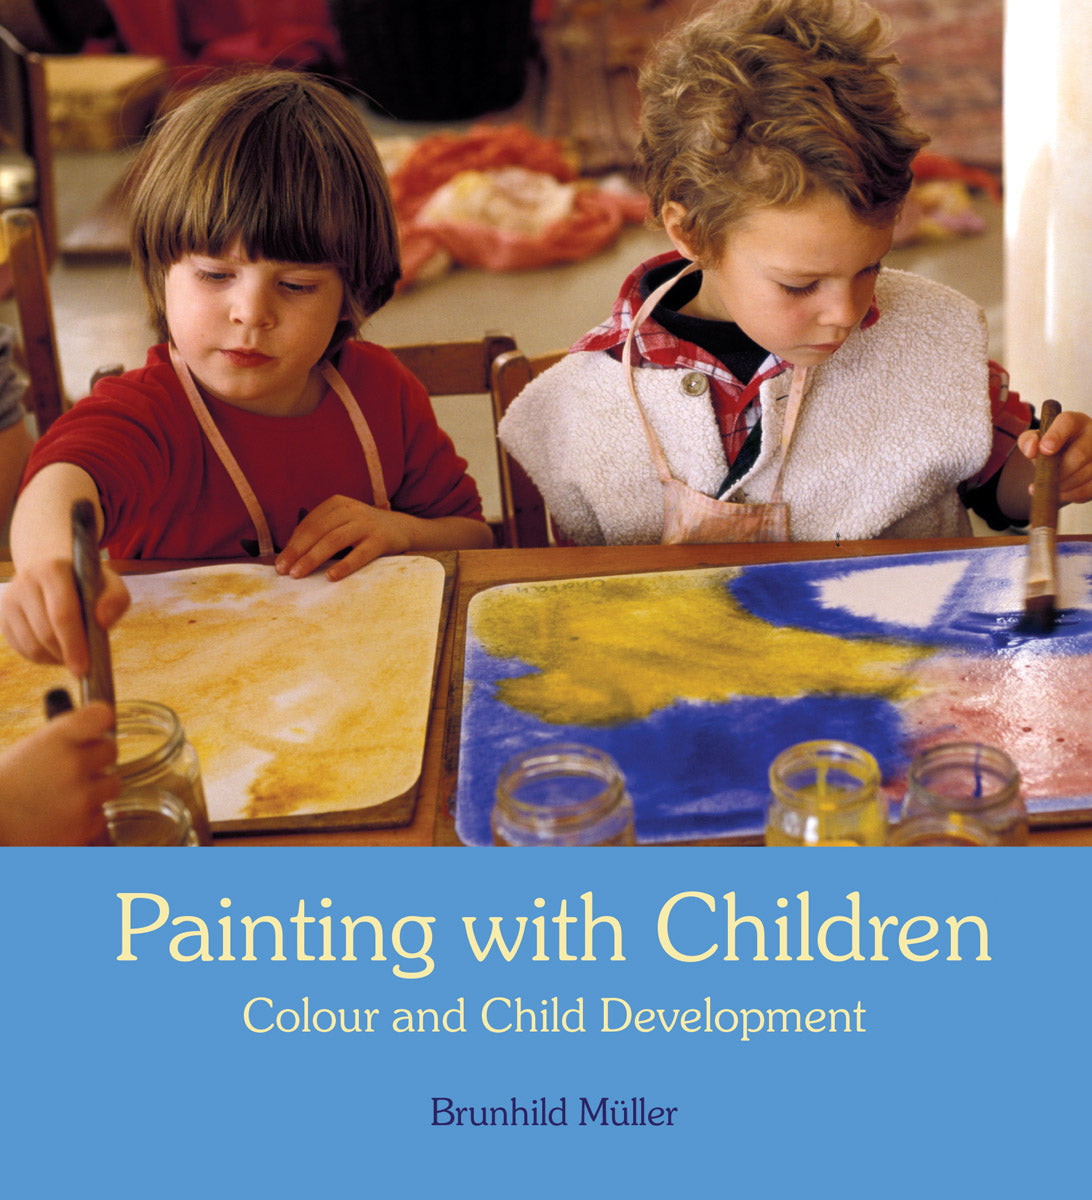 Painting with Children by Brunhild Müller